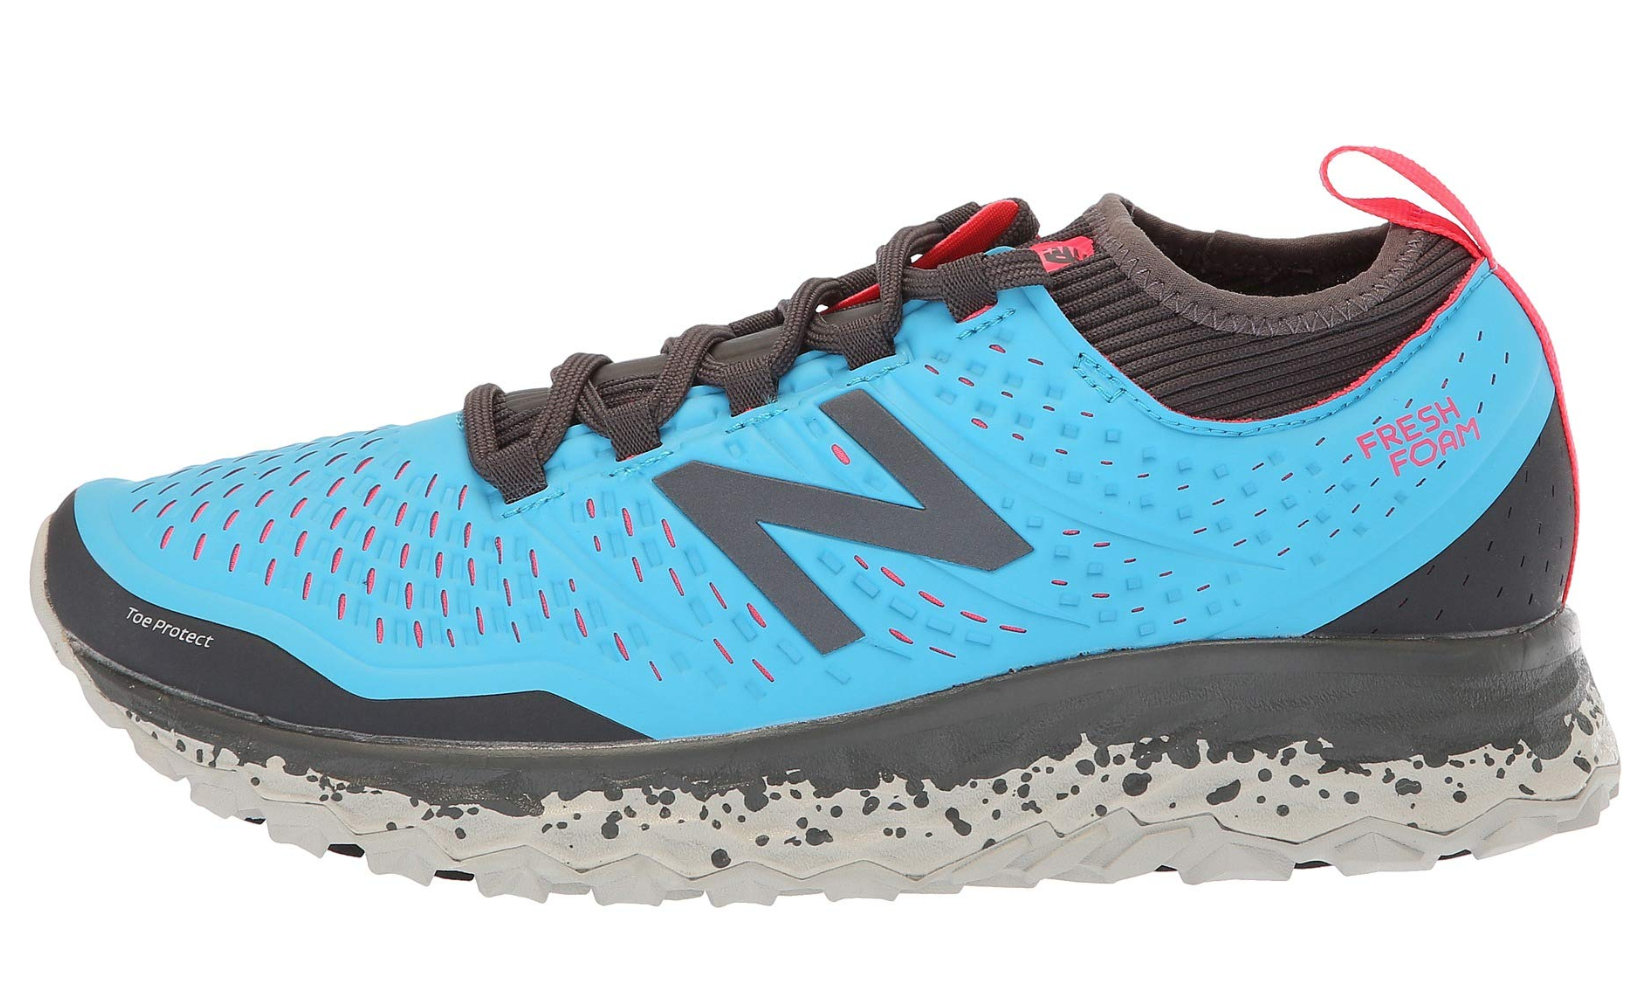 e3c8c397c9b New Balance Running Shoes - 10 Best Running Shoes from New Balance